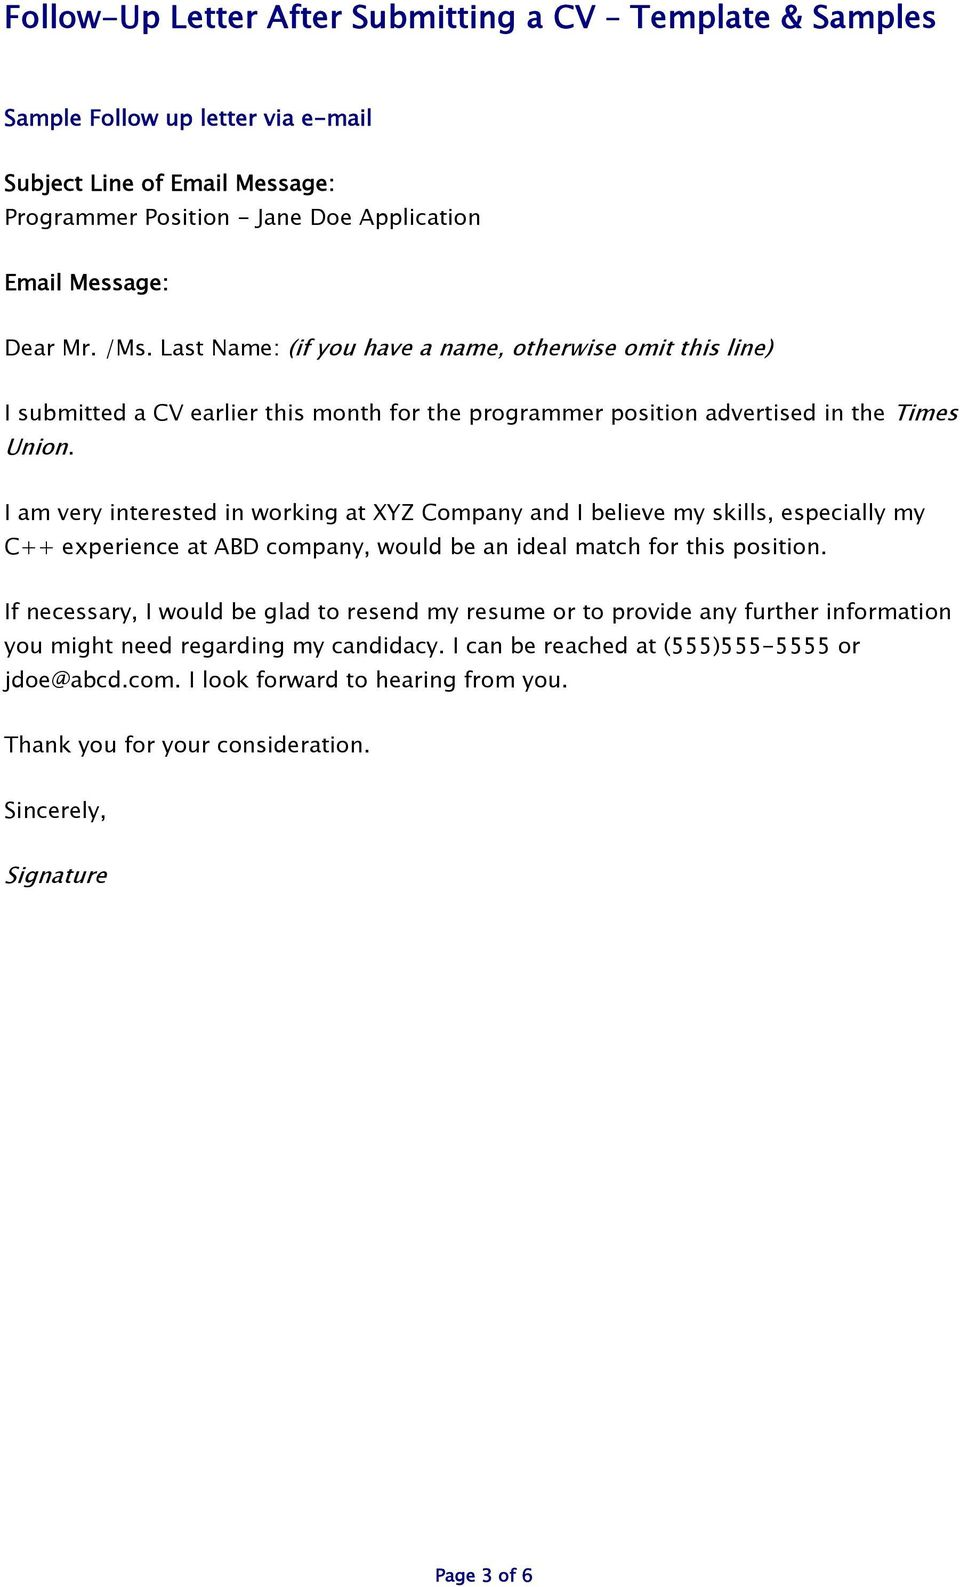 i am very interested in working at xyz company and i believe my skills especially 4 follow up letter template